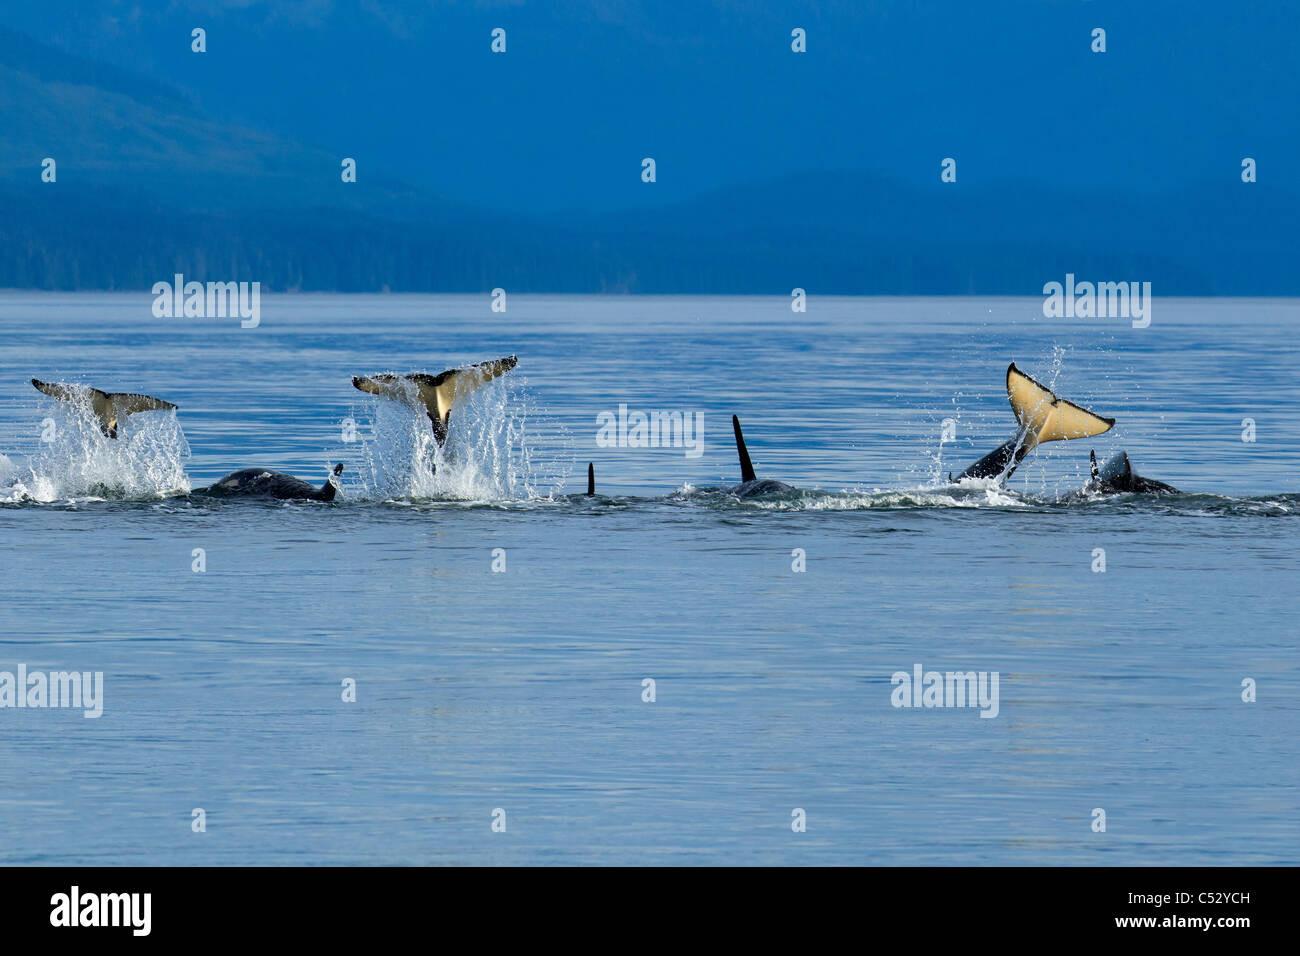 Orca whales playfully slap their tails at the surface in Chatham Strait, Inside Passage, Southeast Alaska, Summer - Stock Image